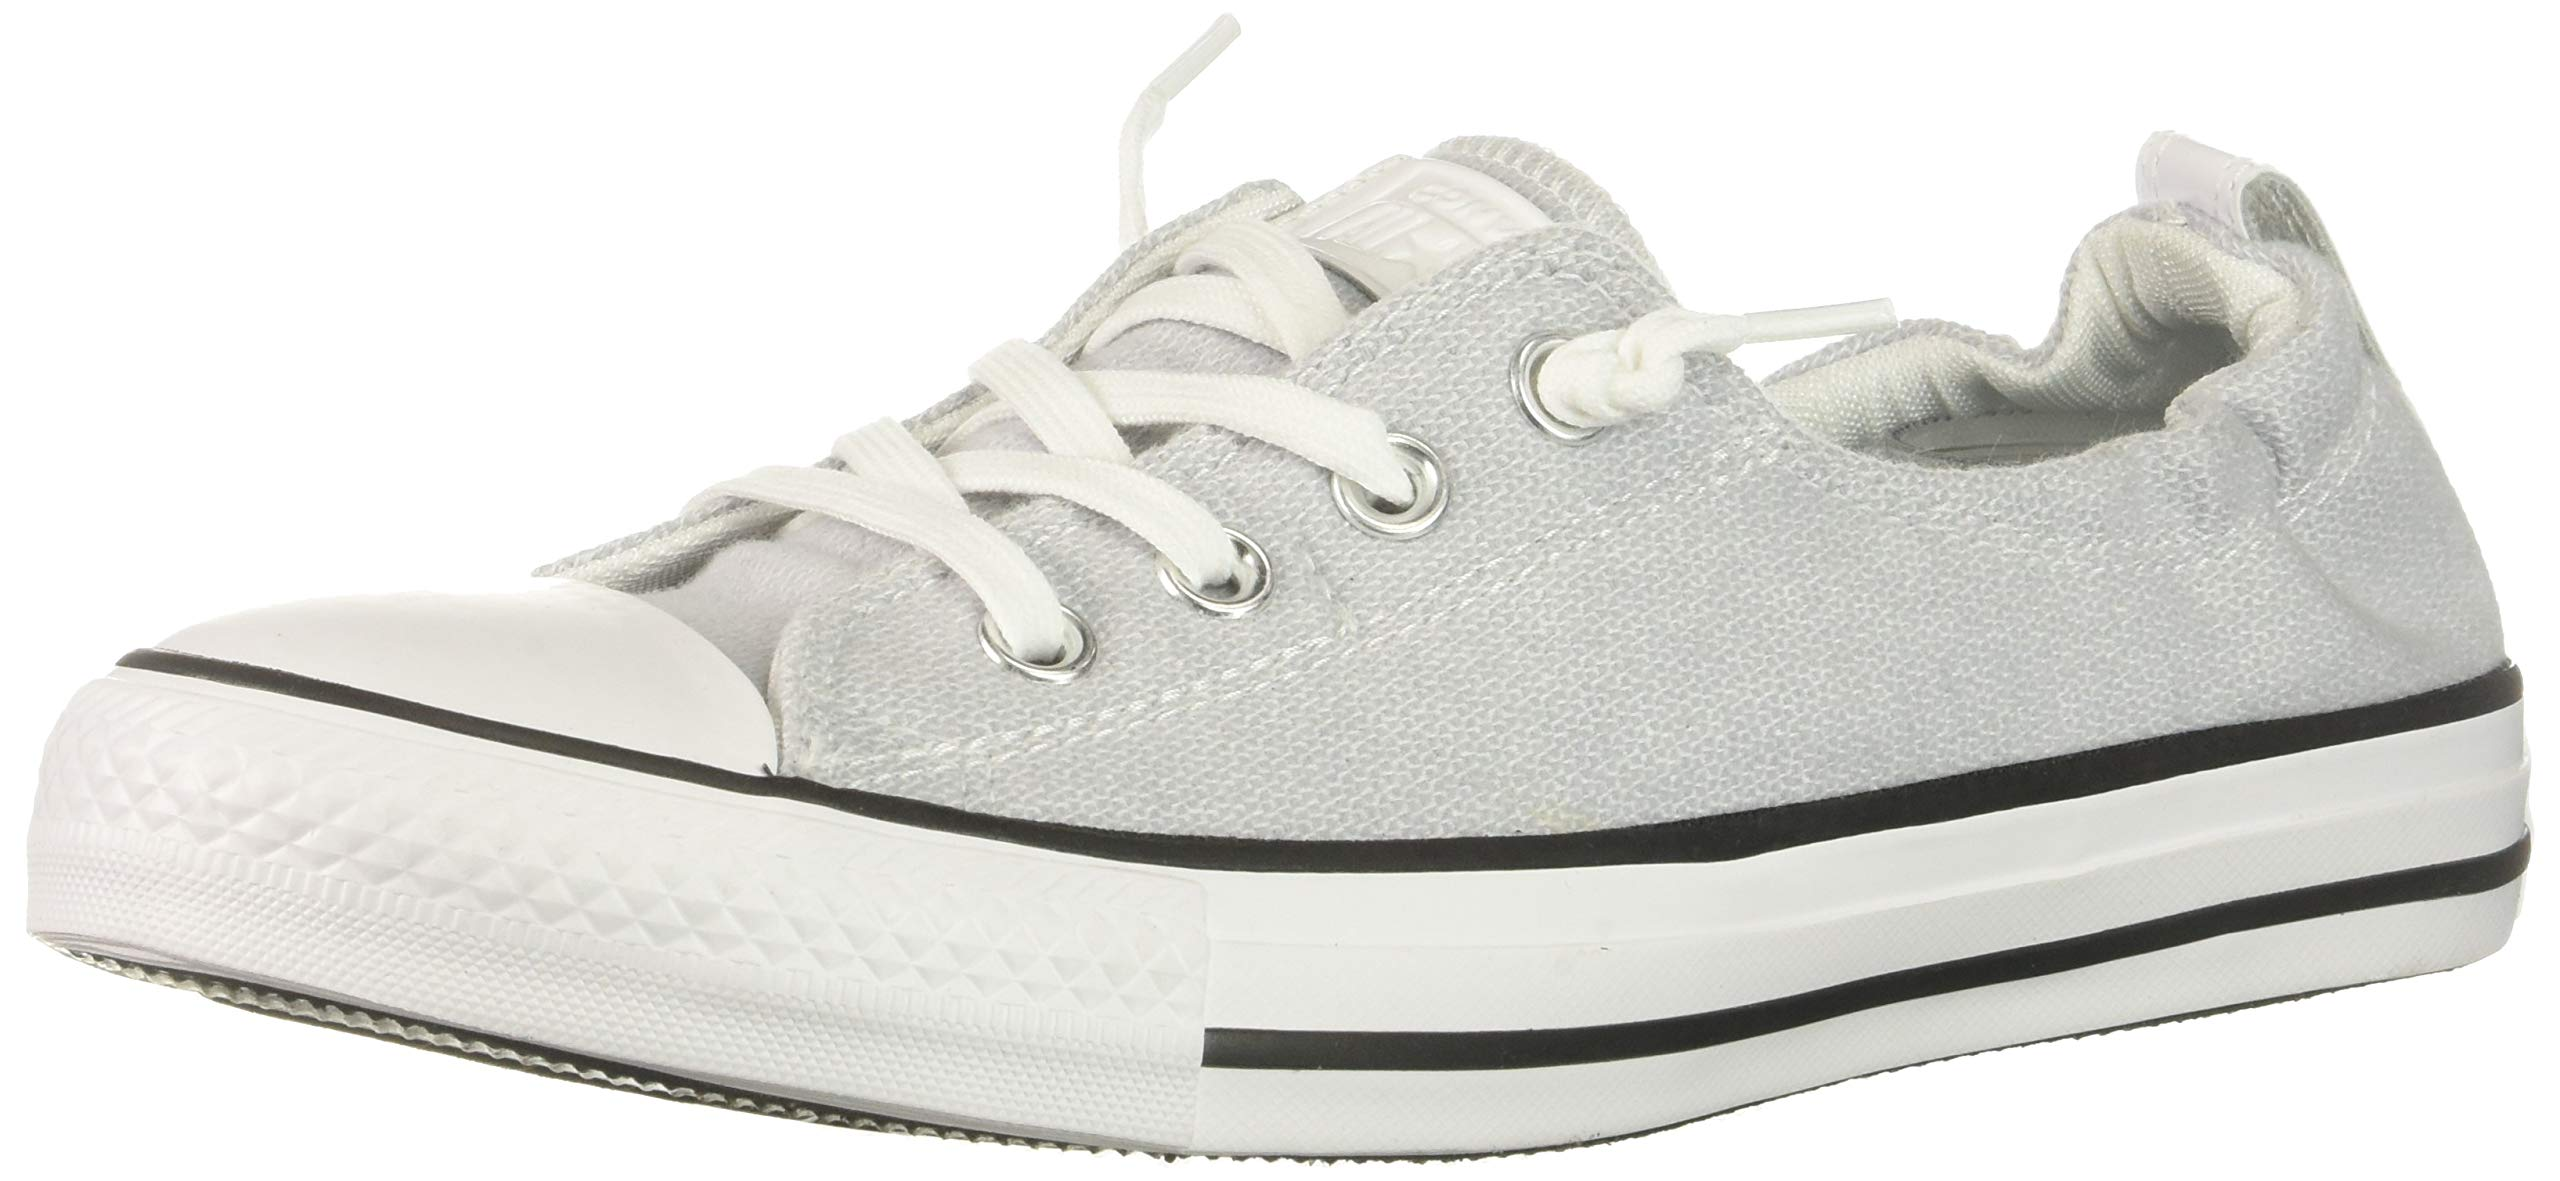 53ea554f738f05 Galleon - Converse Women s Chuck Taylor All Star Shoreline Sneaker ...